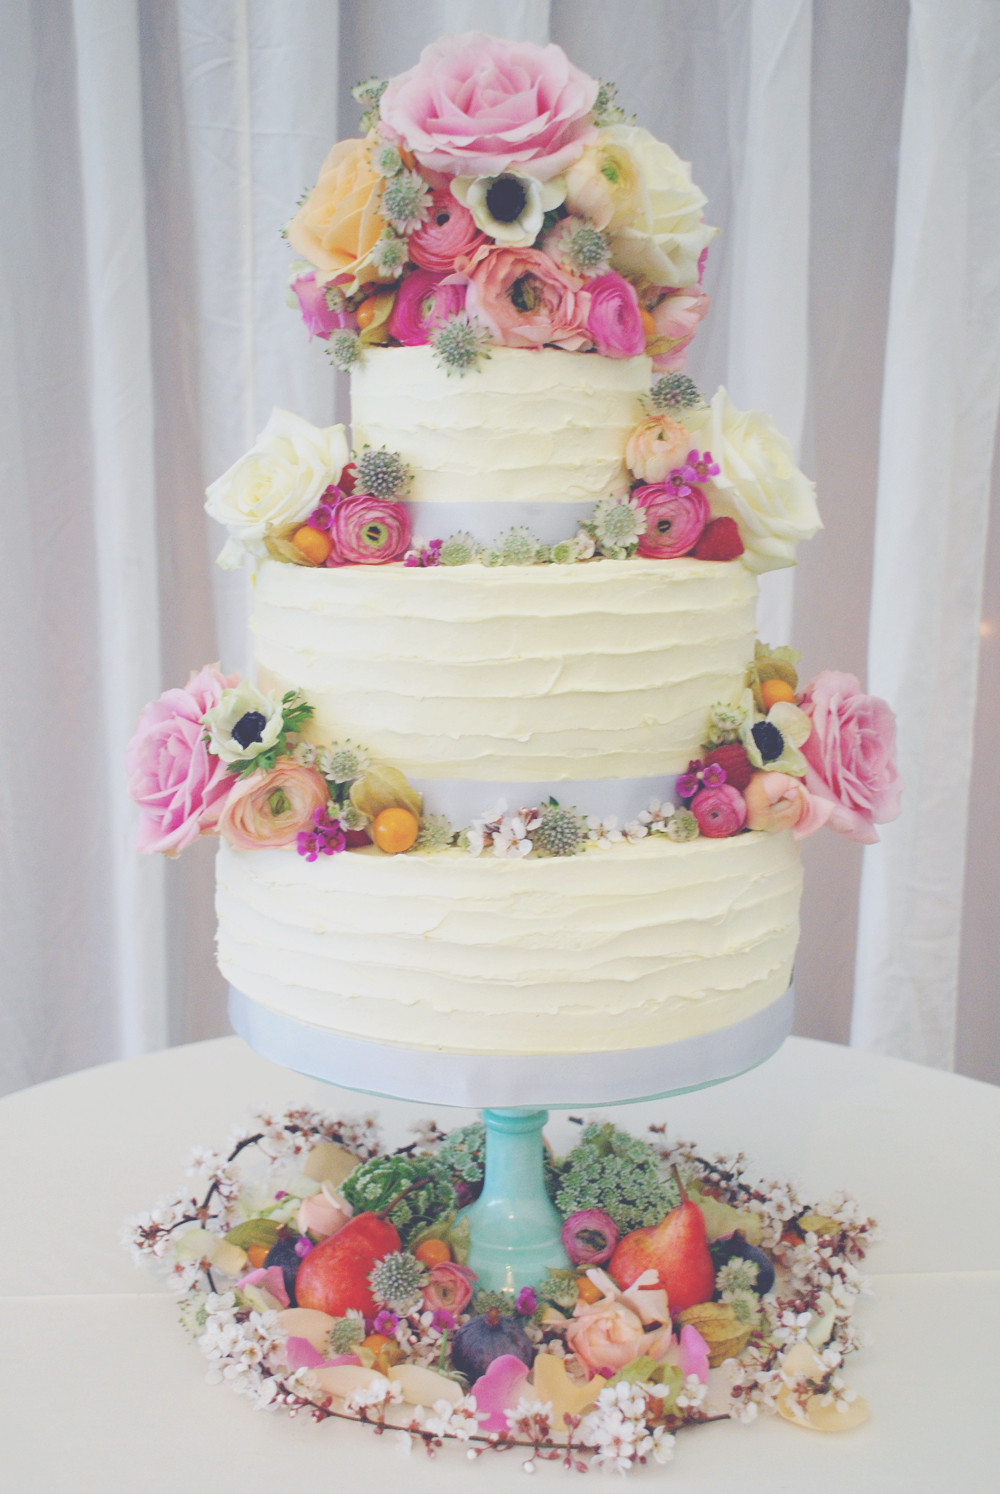 Wedding Cakes 2017  The top 17 wedding cake trends for 2017